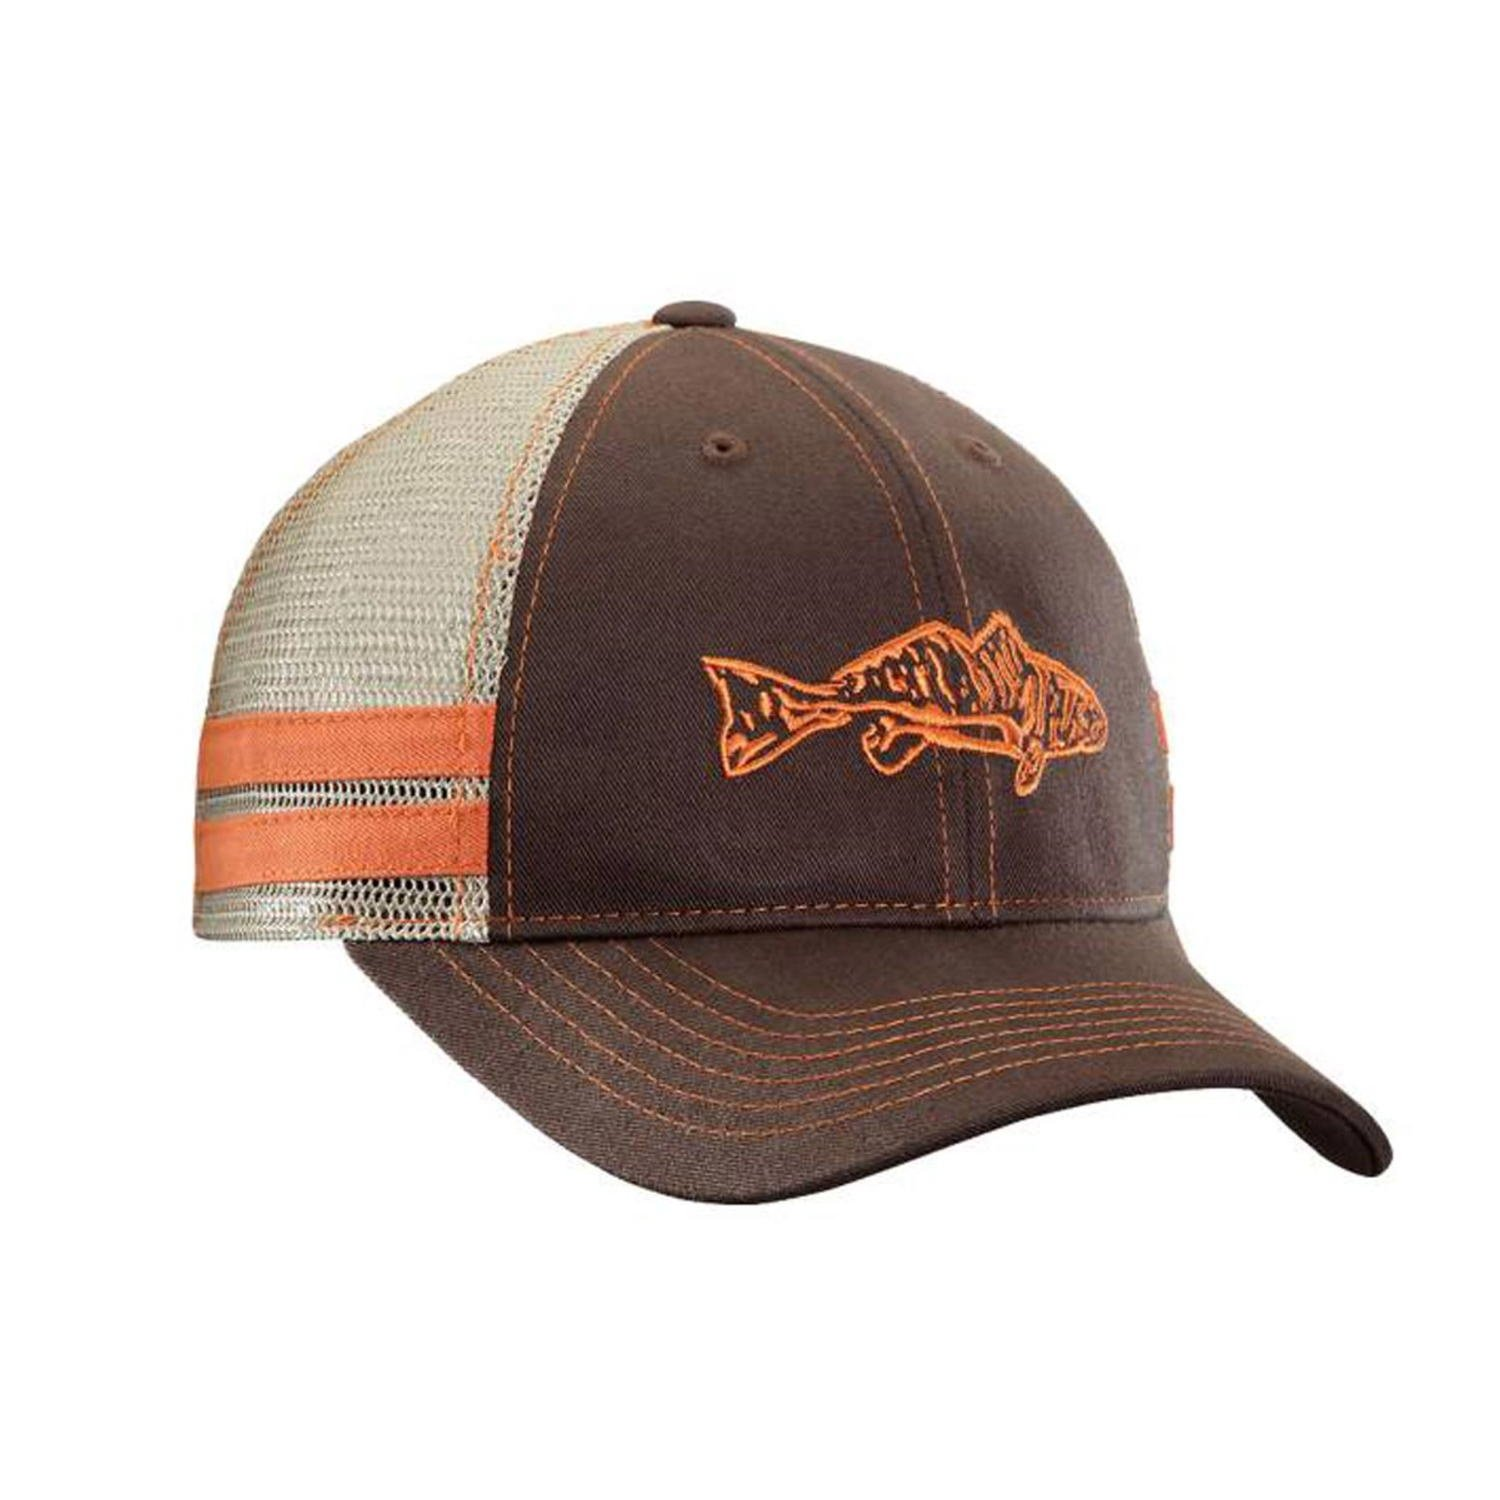 85363107a Amazon.com: Flying Fisherman Redfish Trucker Hat, Chocolate/Khaki: Sports &  Outdoors